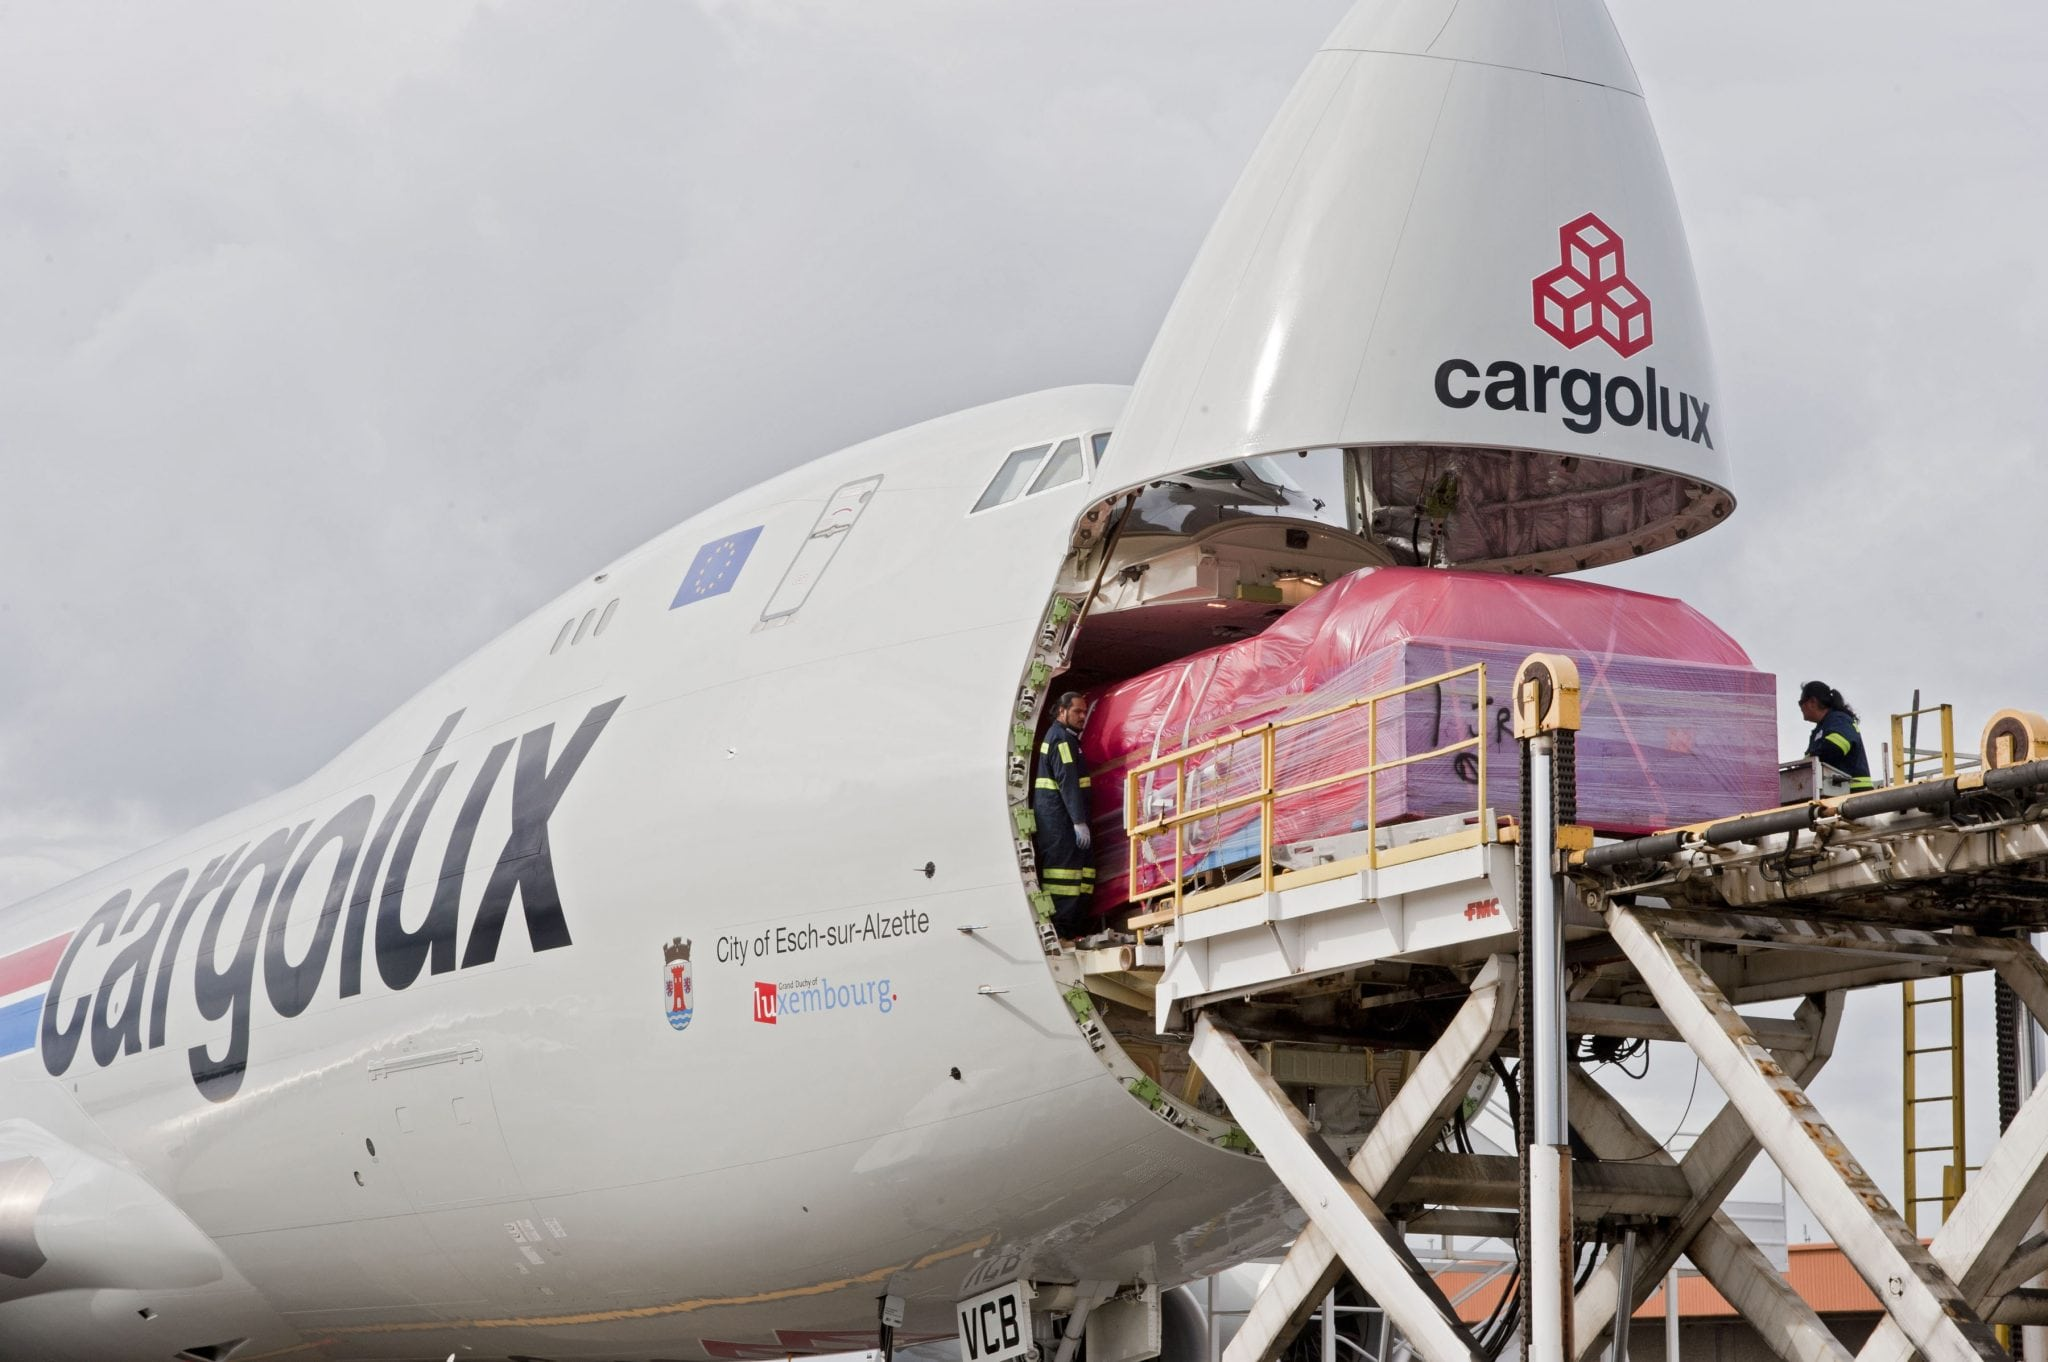 Boeing's 747-8 freighter aircraft